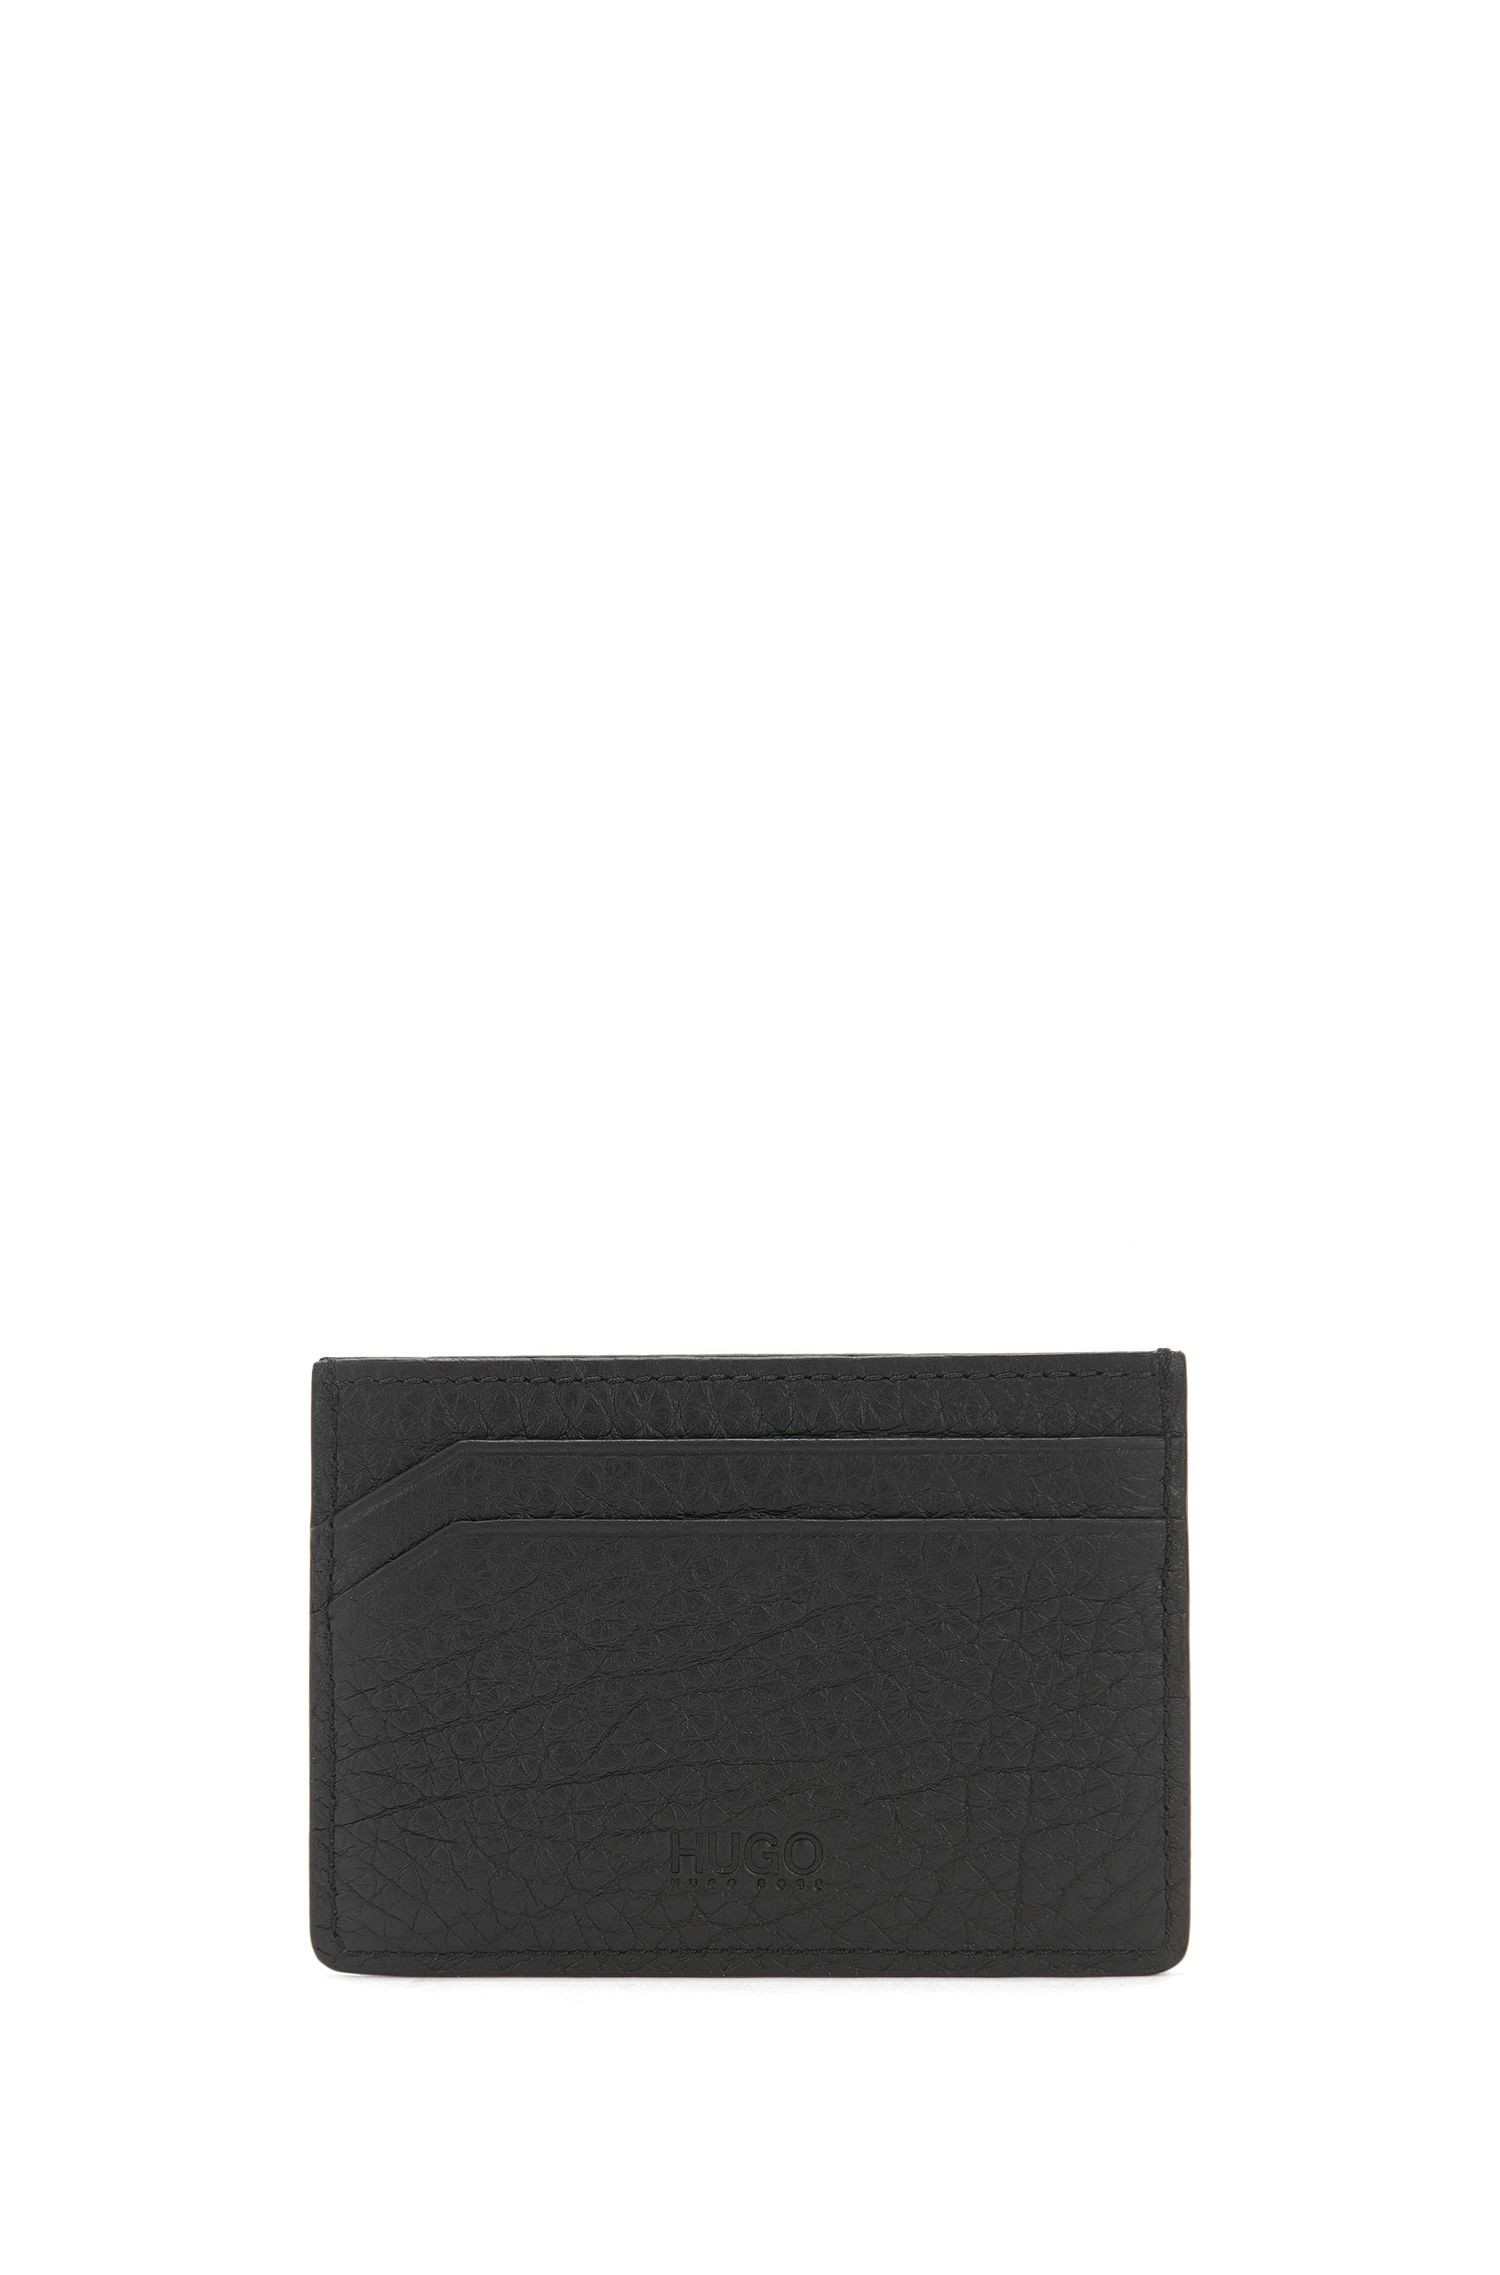 Full-Grain Leather Card Holder | Victorian L S Card